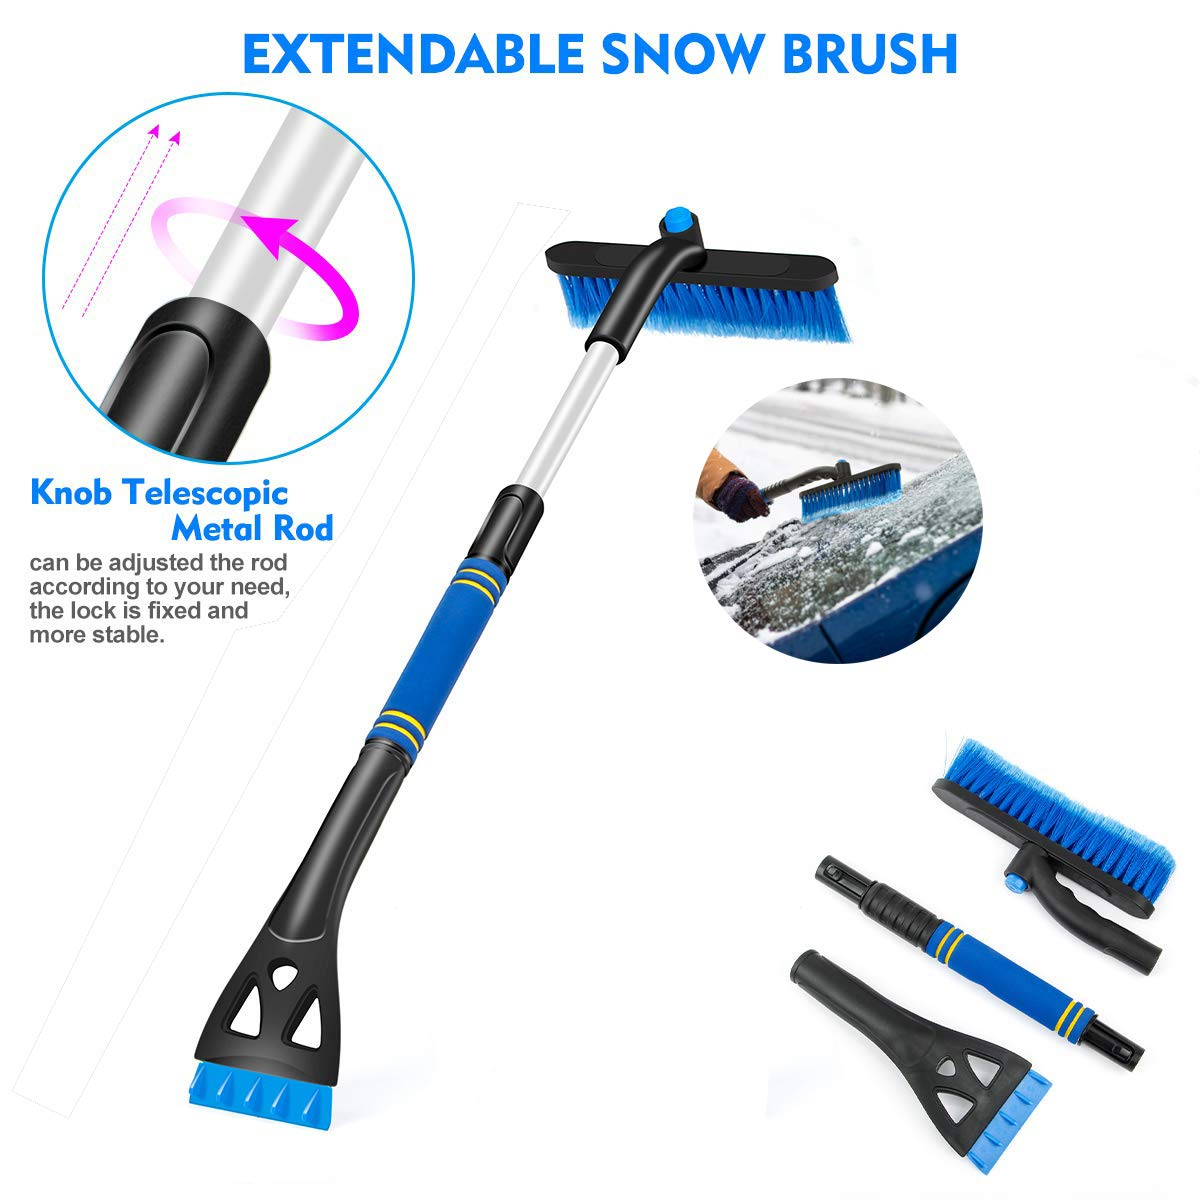 No Scratch Winter Car Snow Cleaning Tool For Car Automotive Truck SUV Windshield Windows Car Snow Brush 360/° Extendable Snow Remover with Ice Scraper /& Foam Grip Detachable Snow Ice Removal